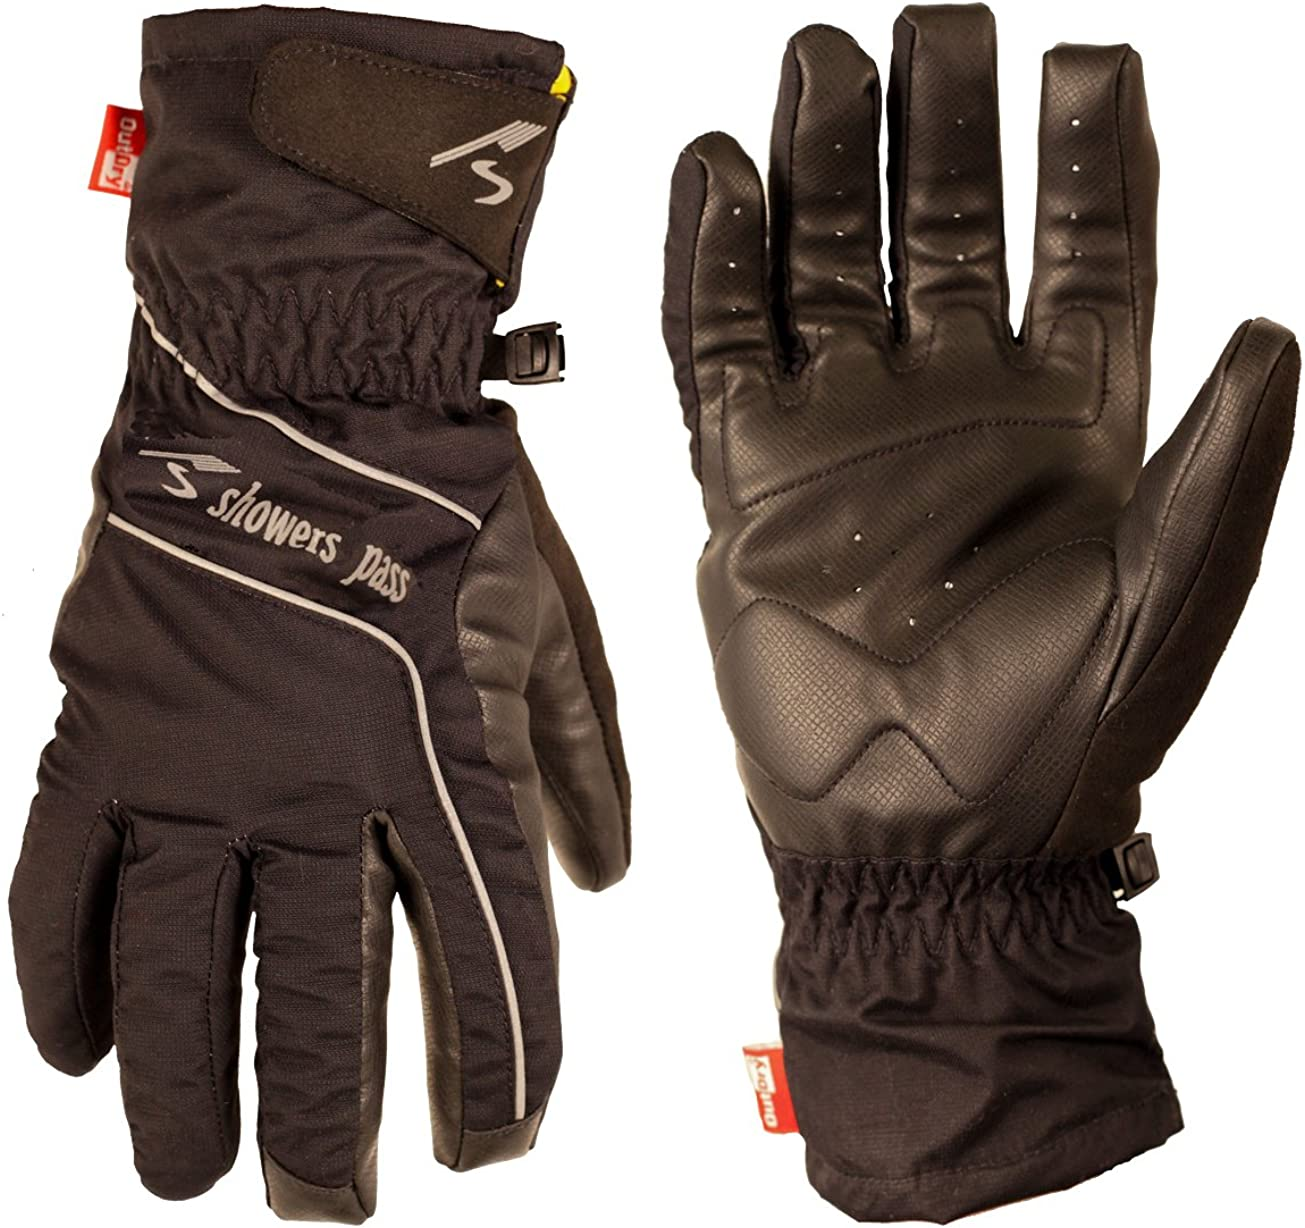 Grey Showers Pass Crosspoint Waterproof Knit Wool Cycling Gloves